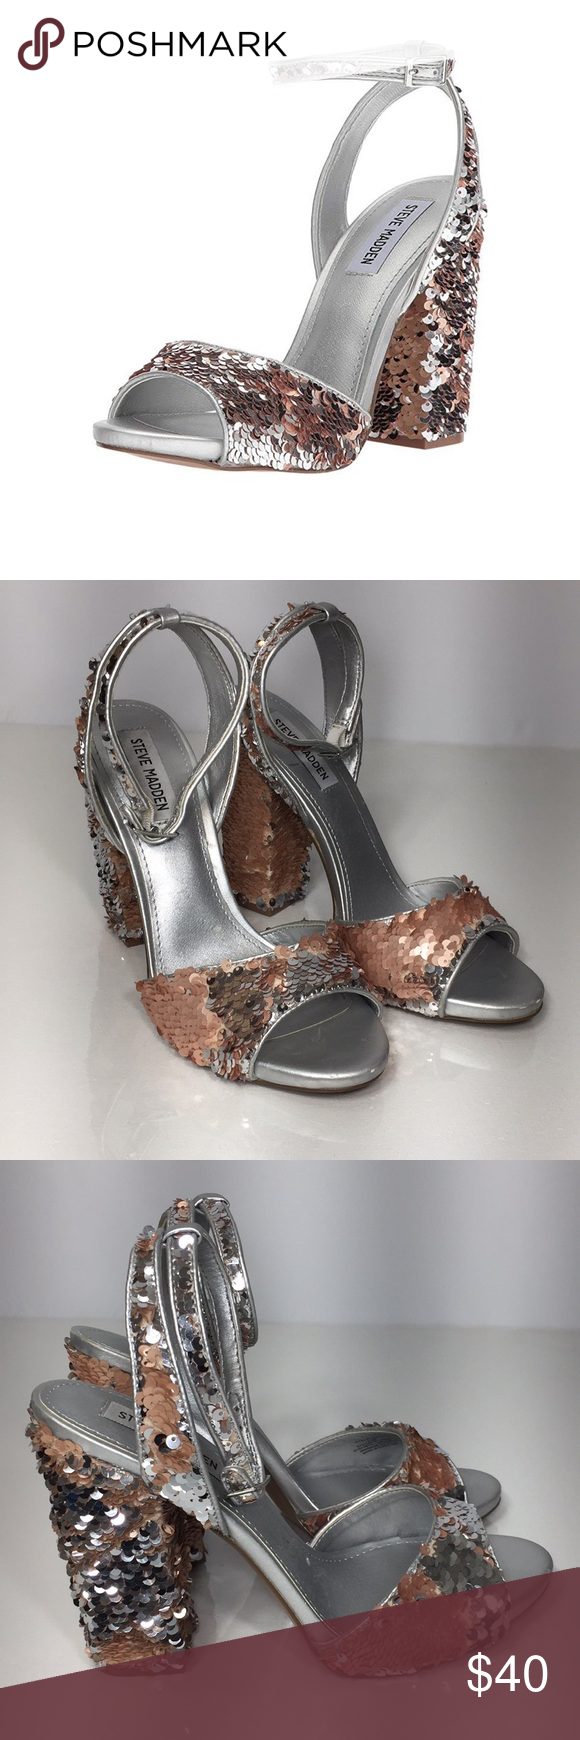 f4d5452f226 Steve Madden Ritzy Sequin Sandal New without box Never worn (tried ...